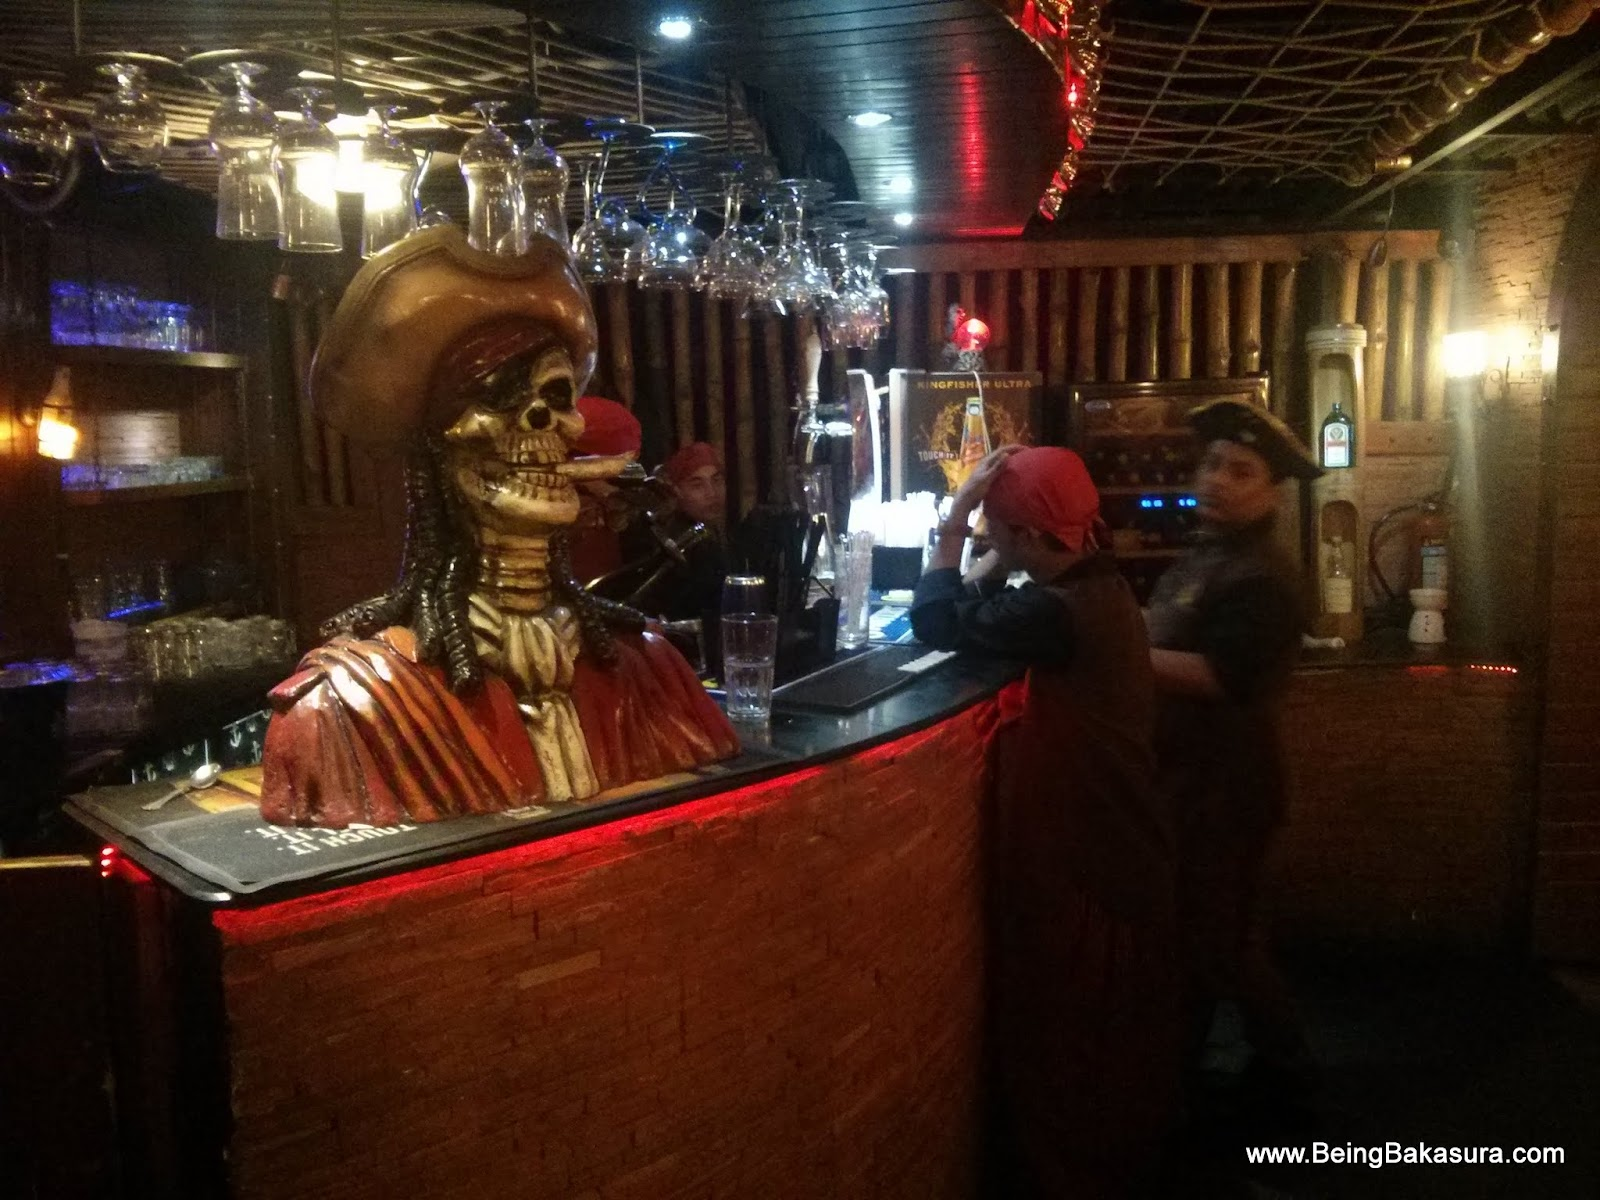 Being Bakasura: Dock yourself for a Pirate themed dining